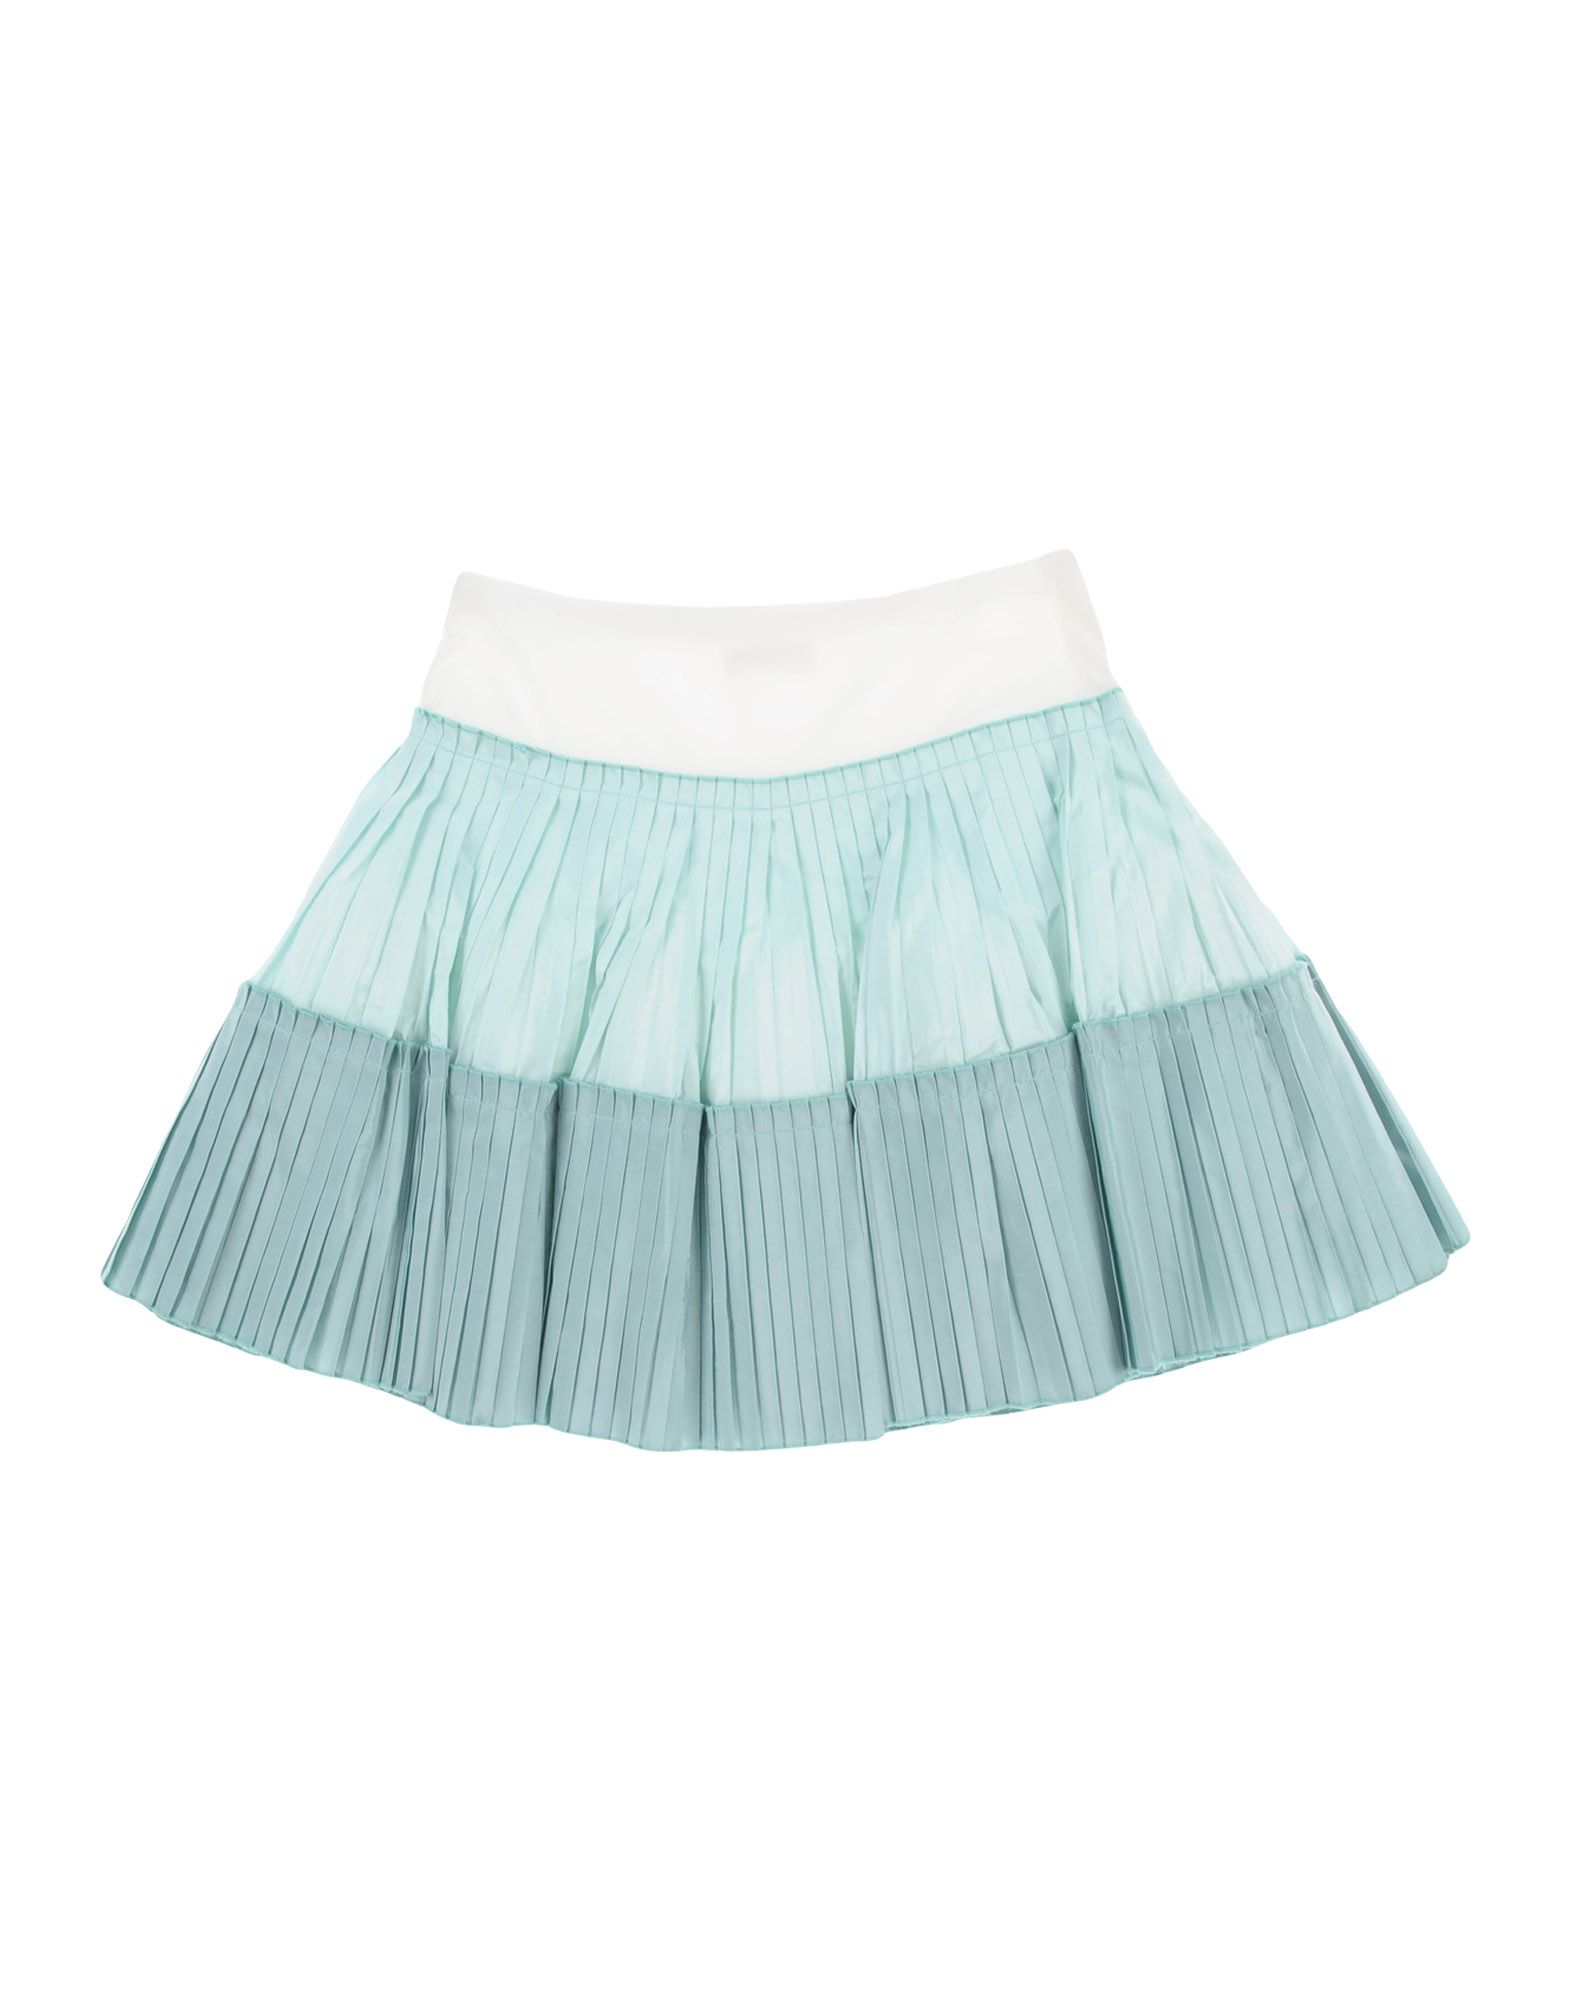 MONNALISA CHIC Skirt in Light Green